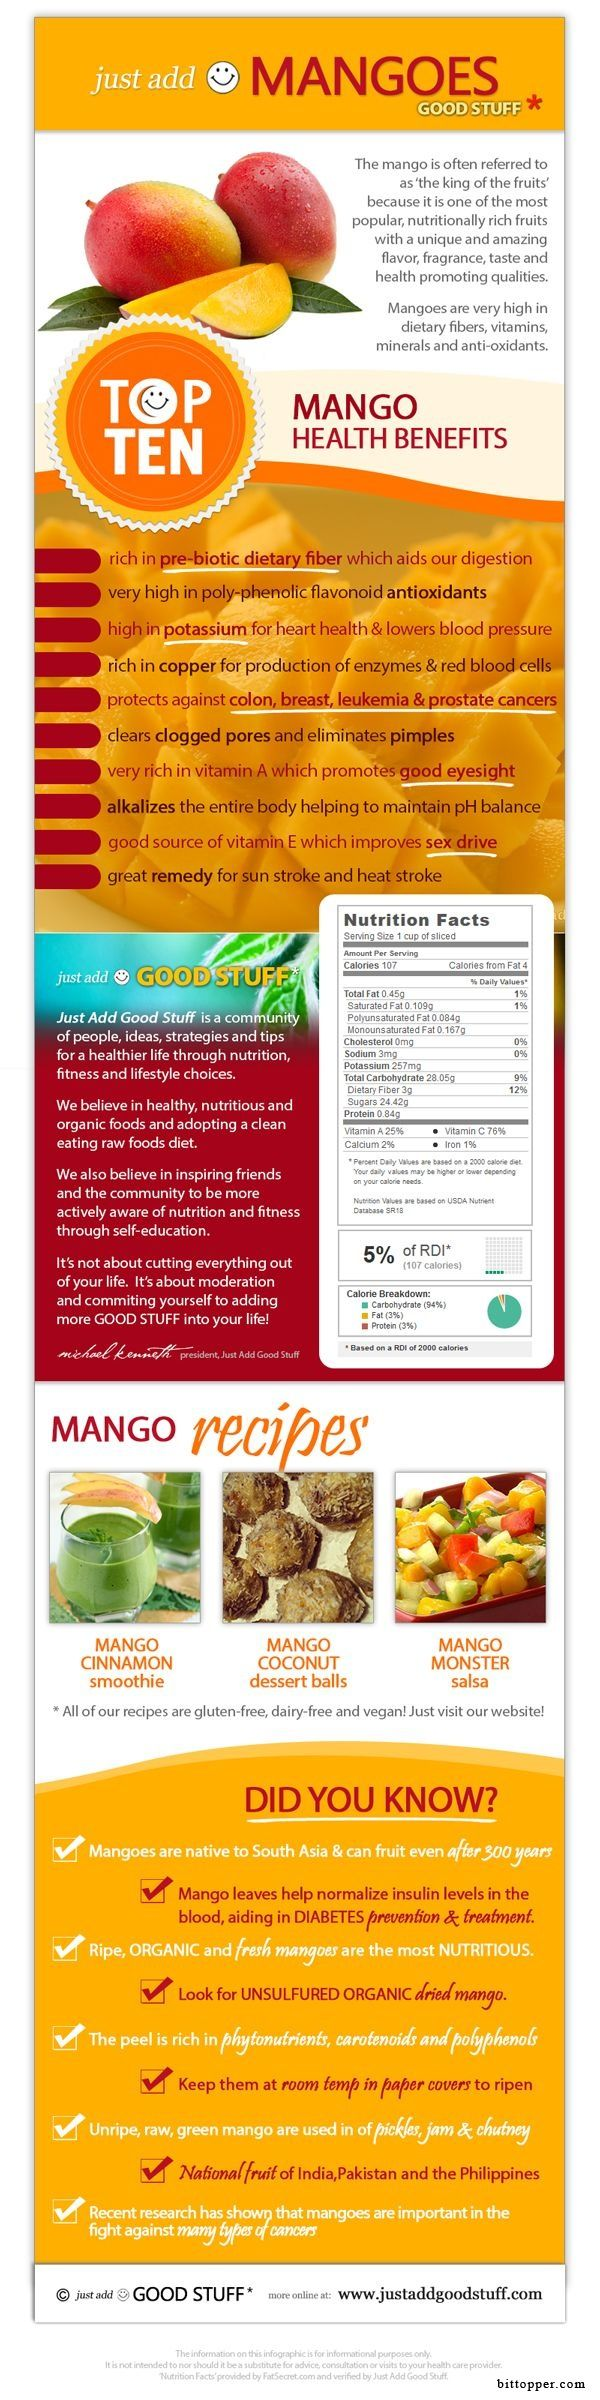 MANGO INFOGRAPHIC – Top Health Benefits of Mangoes, Nutritional Data, Interesting Facts and Mango Recipes